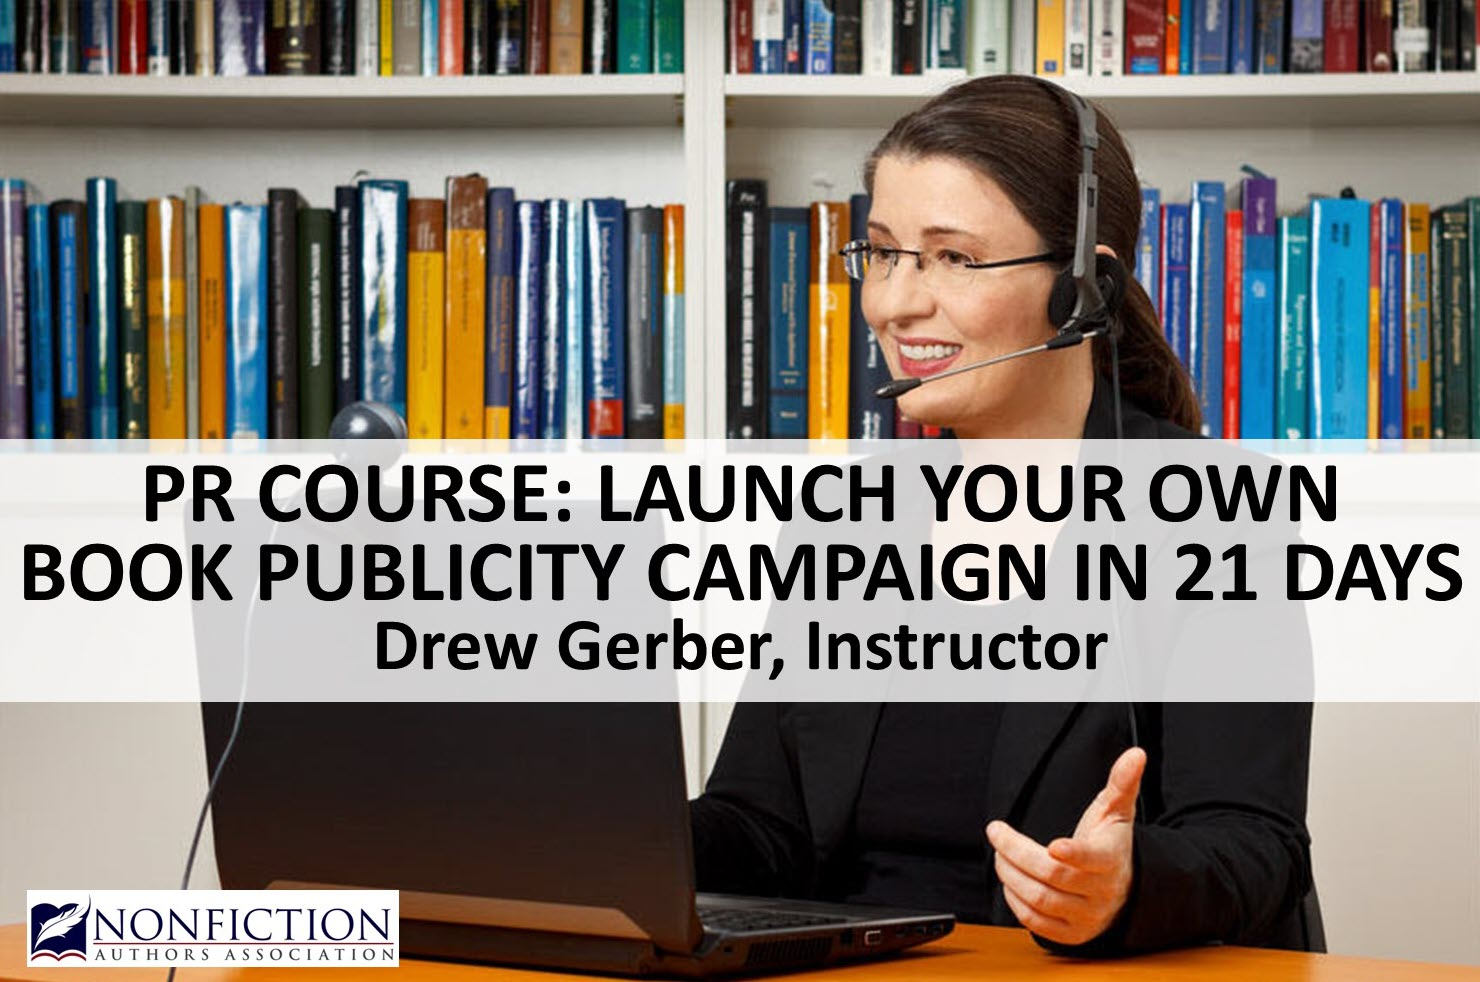 Course: Launch Your Own Book Publicity Campaign